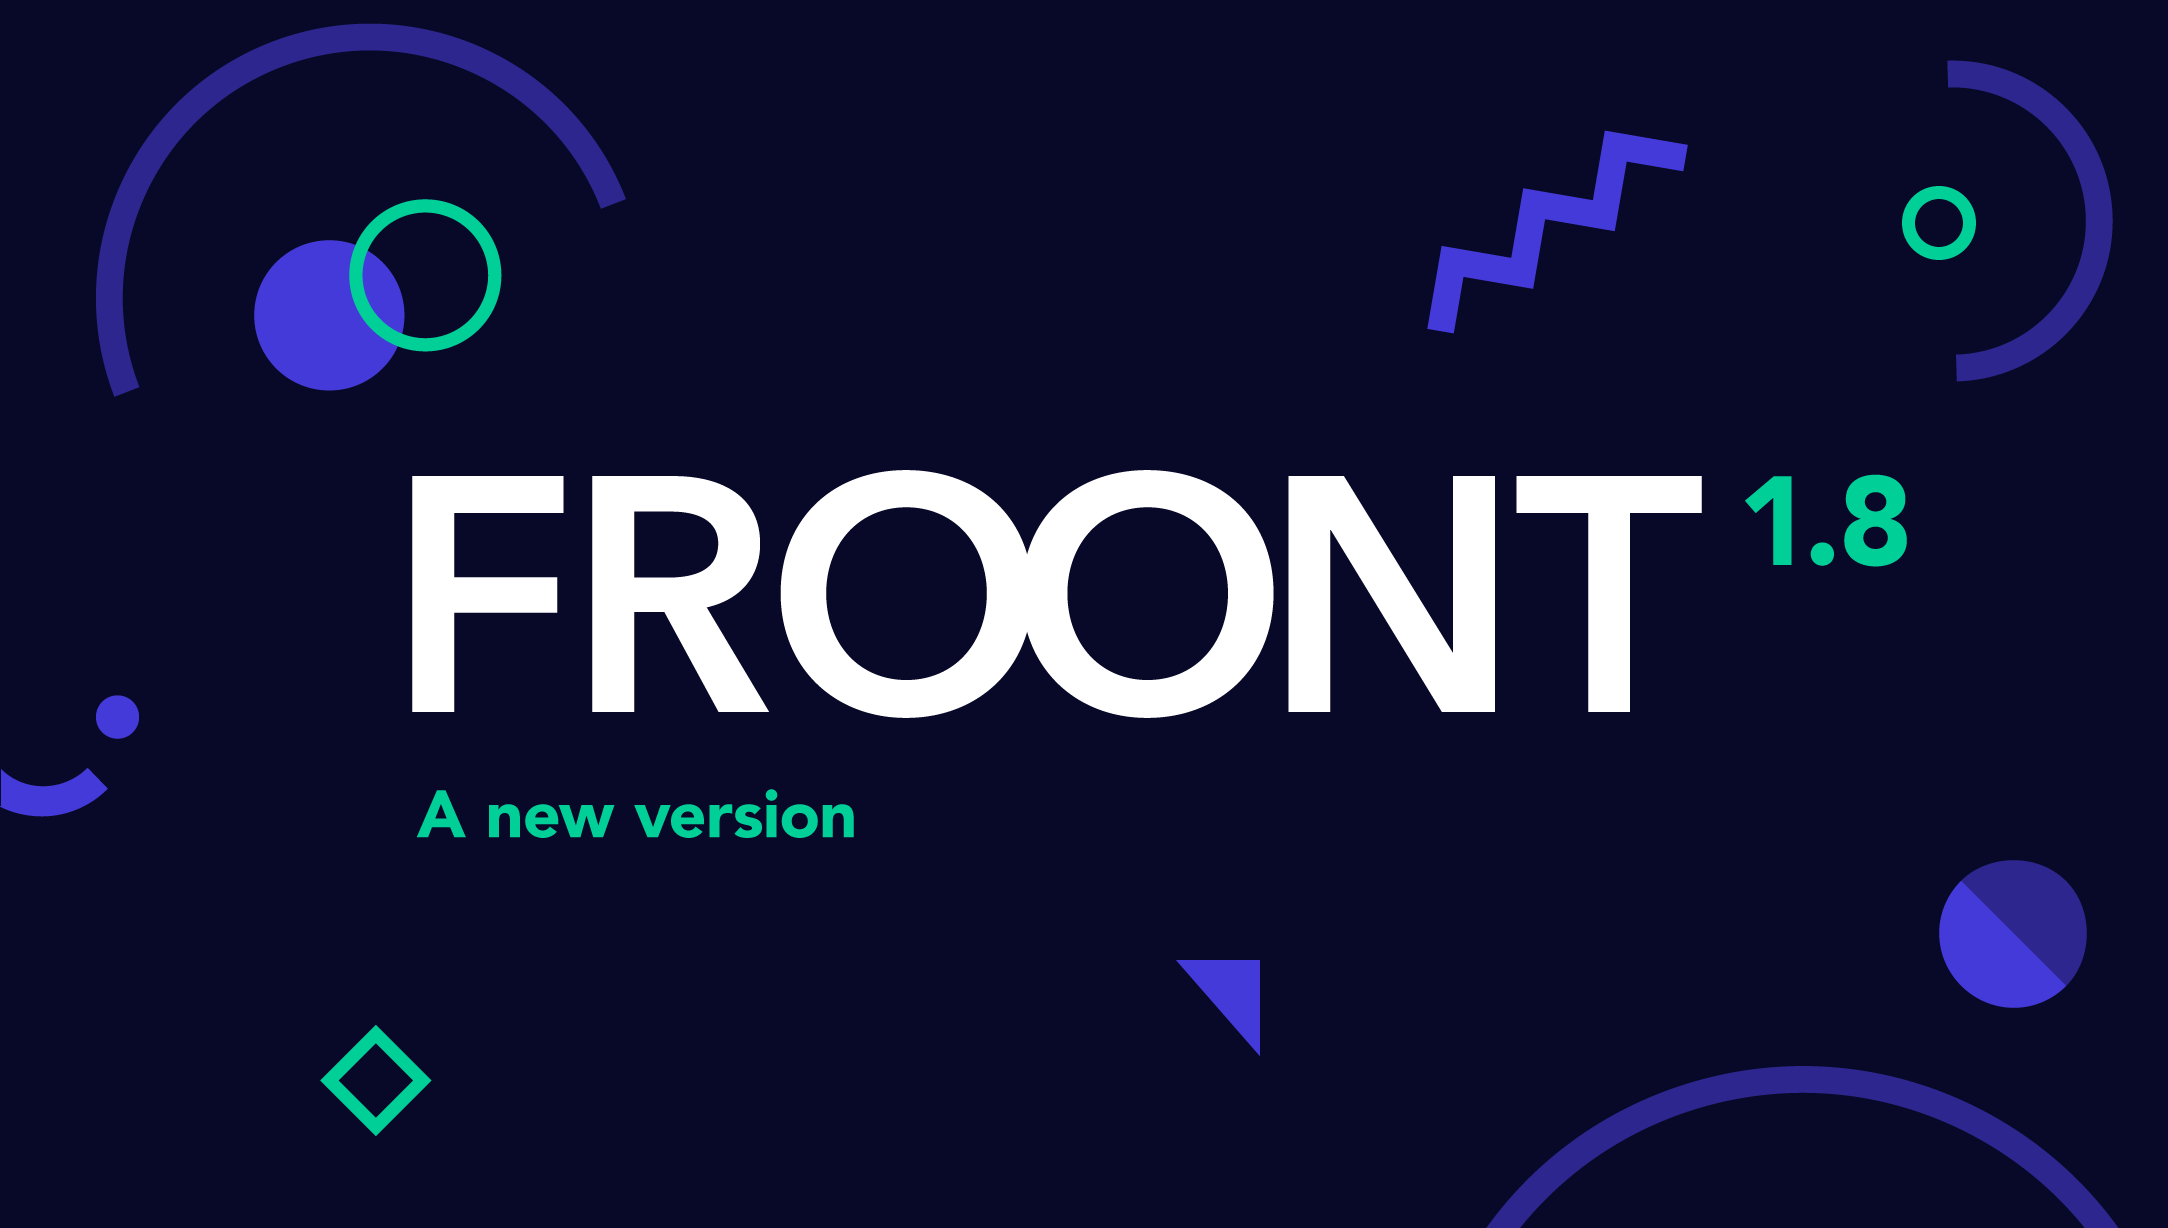 A new Froont v1.8 is live